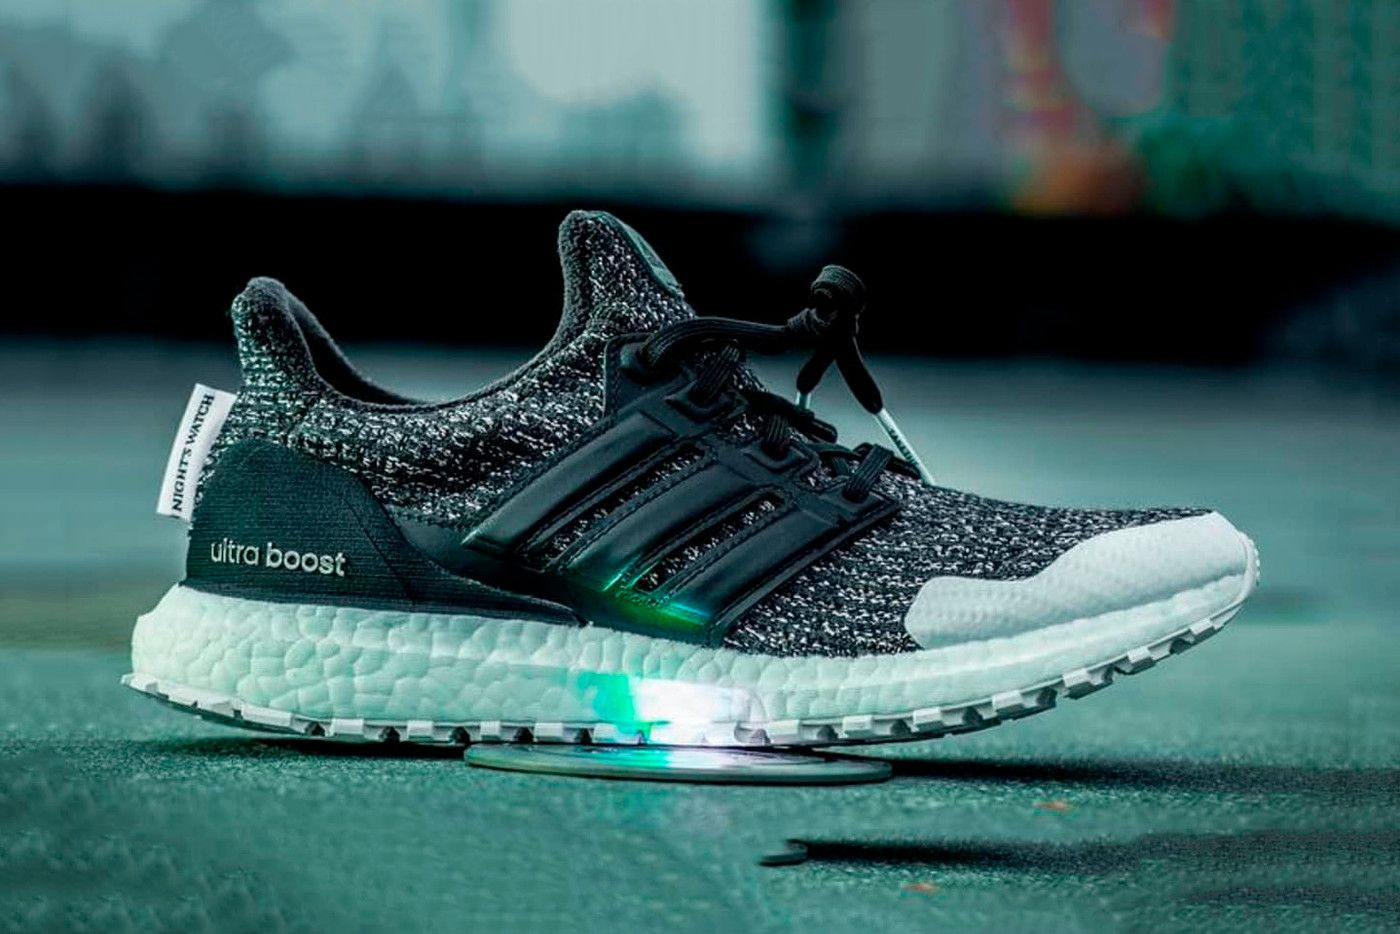 cd85b15e1  Game of Thrones  x adidas UltraBOOST